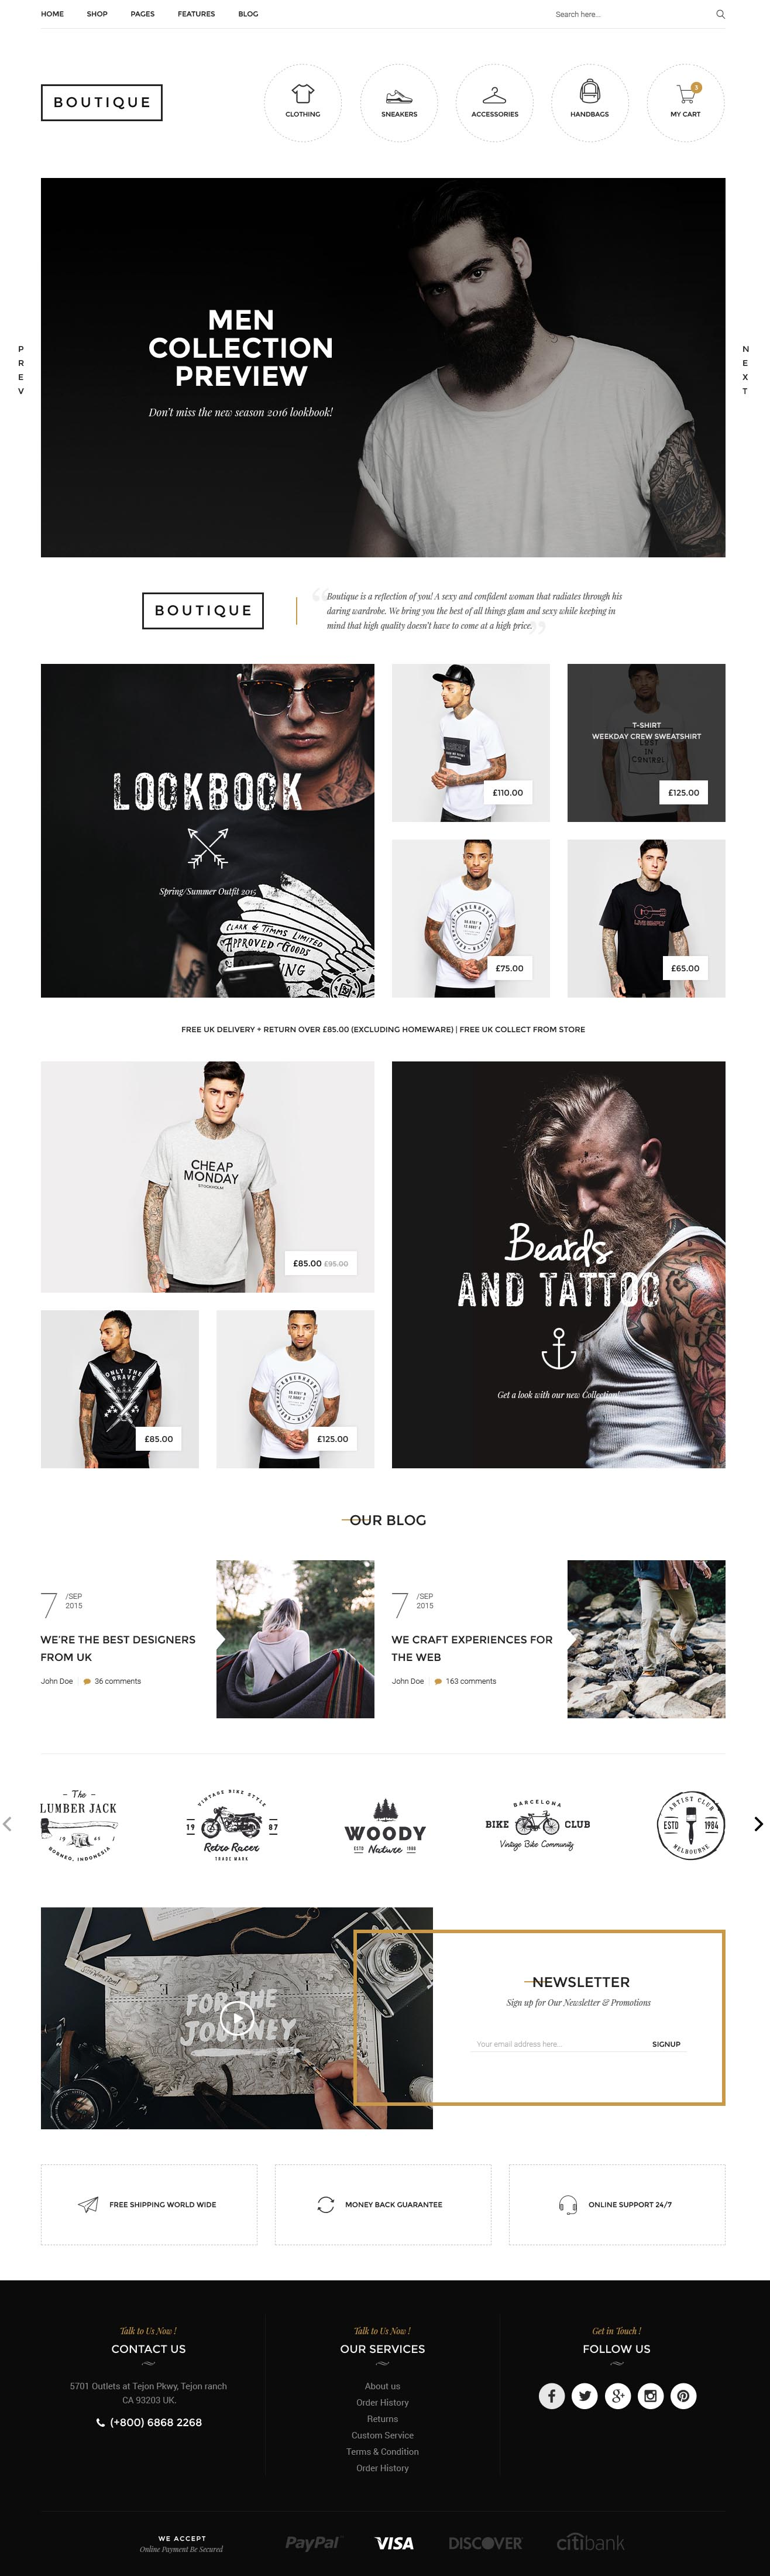 Boutique - Kute Fashion HTML Template